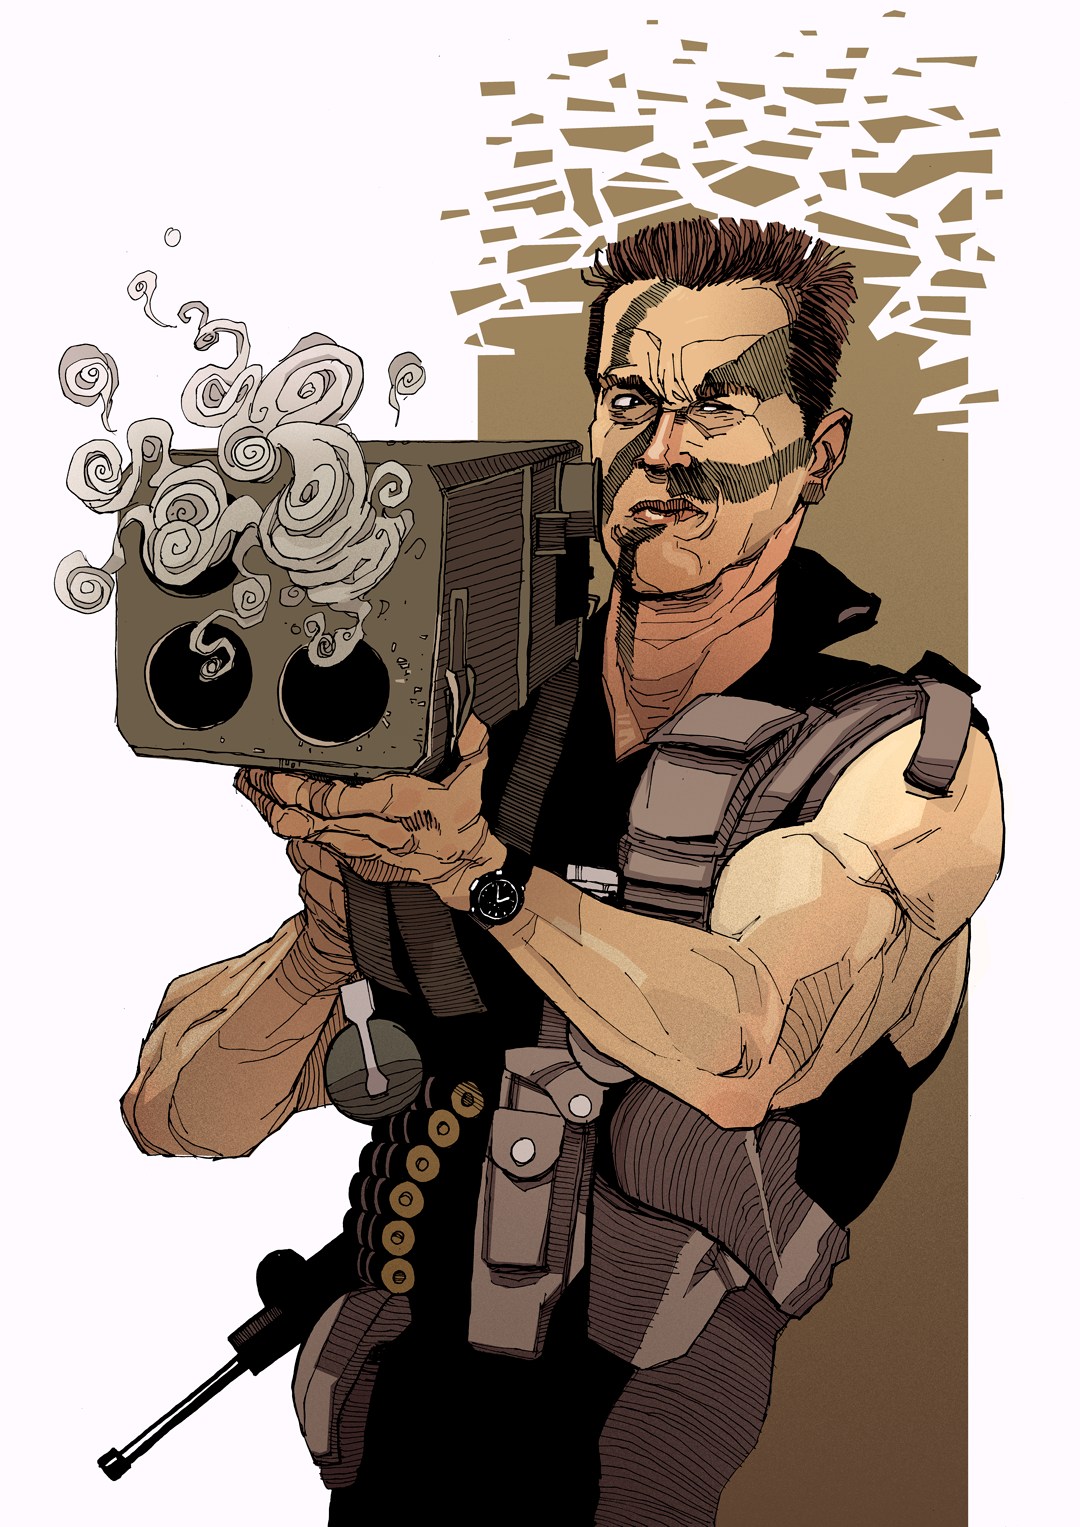 Commando Arnold Schwarzenegger Rocket Launcher Drawing